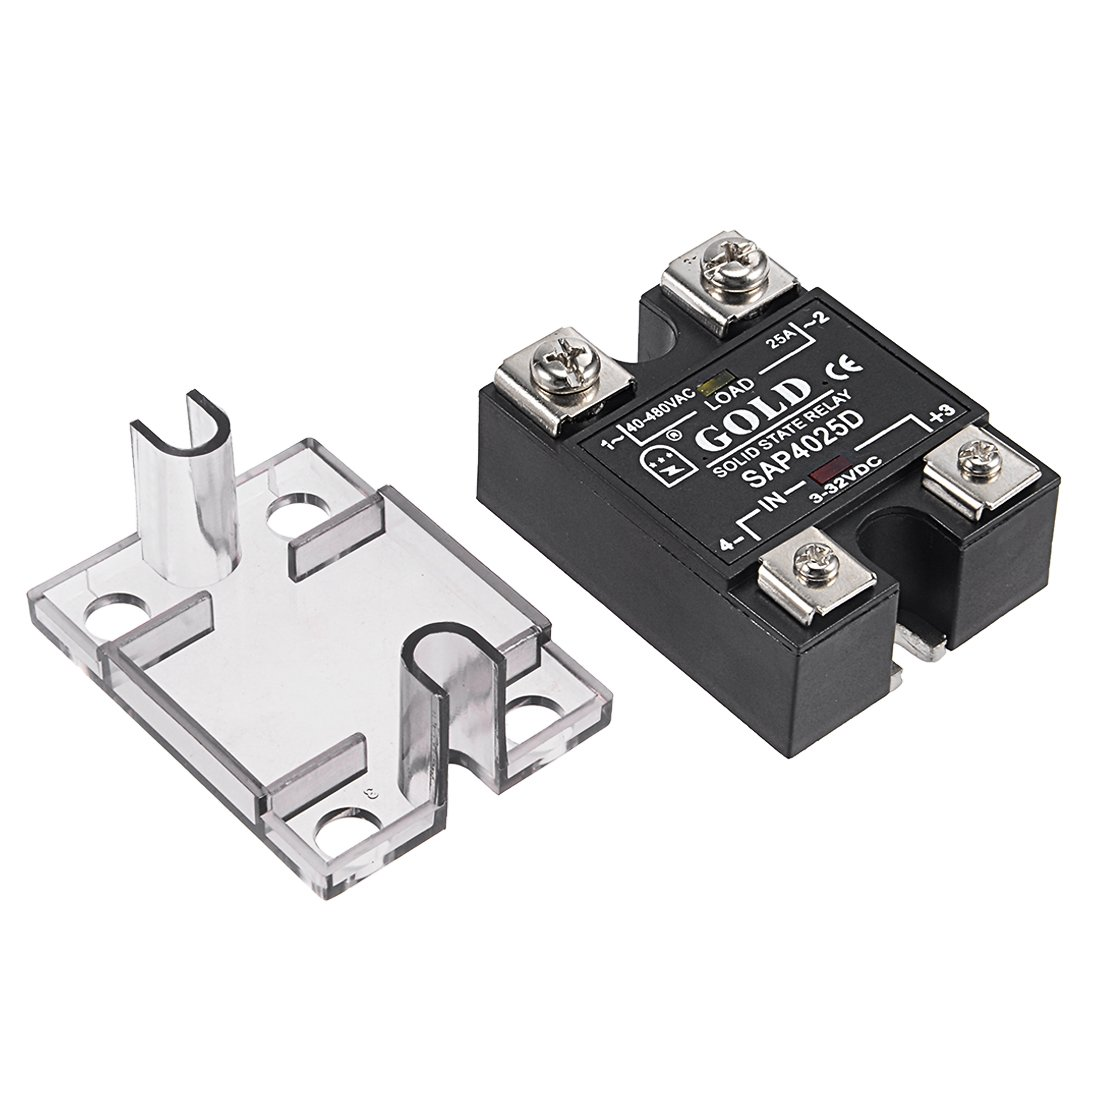 Uxcell Sap4050d G80 3 32vdc To 40 480vac 50a Single Phase Solid State Relay For Dc Module